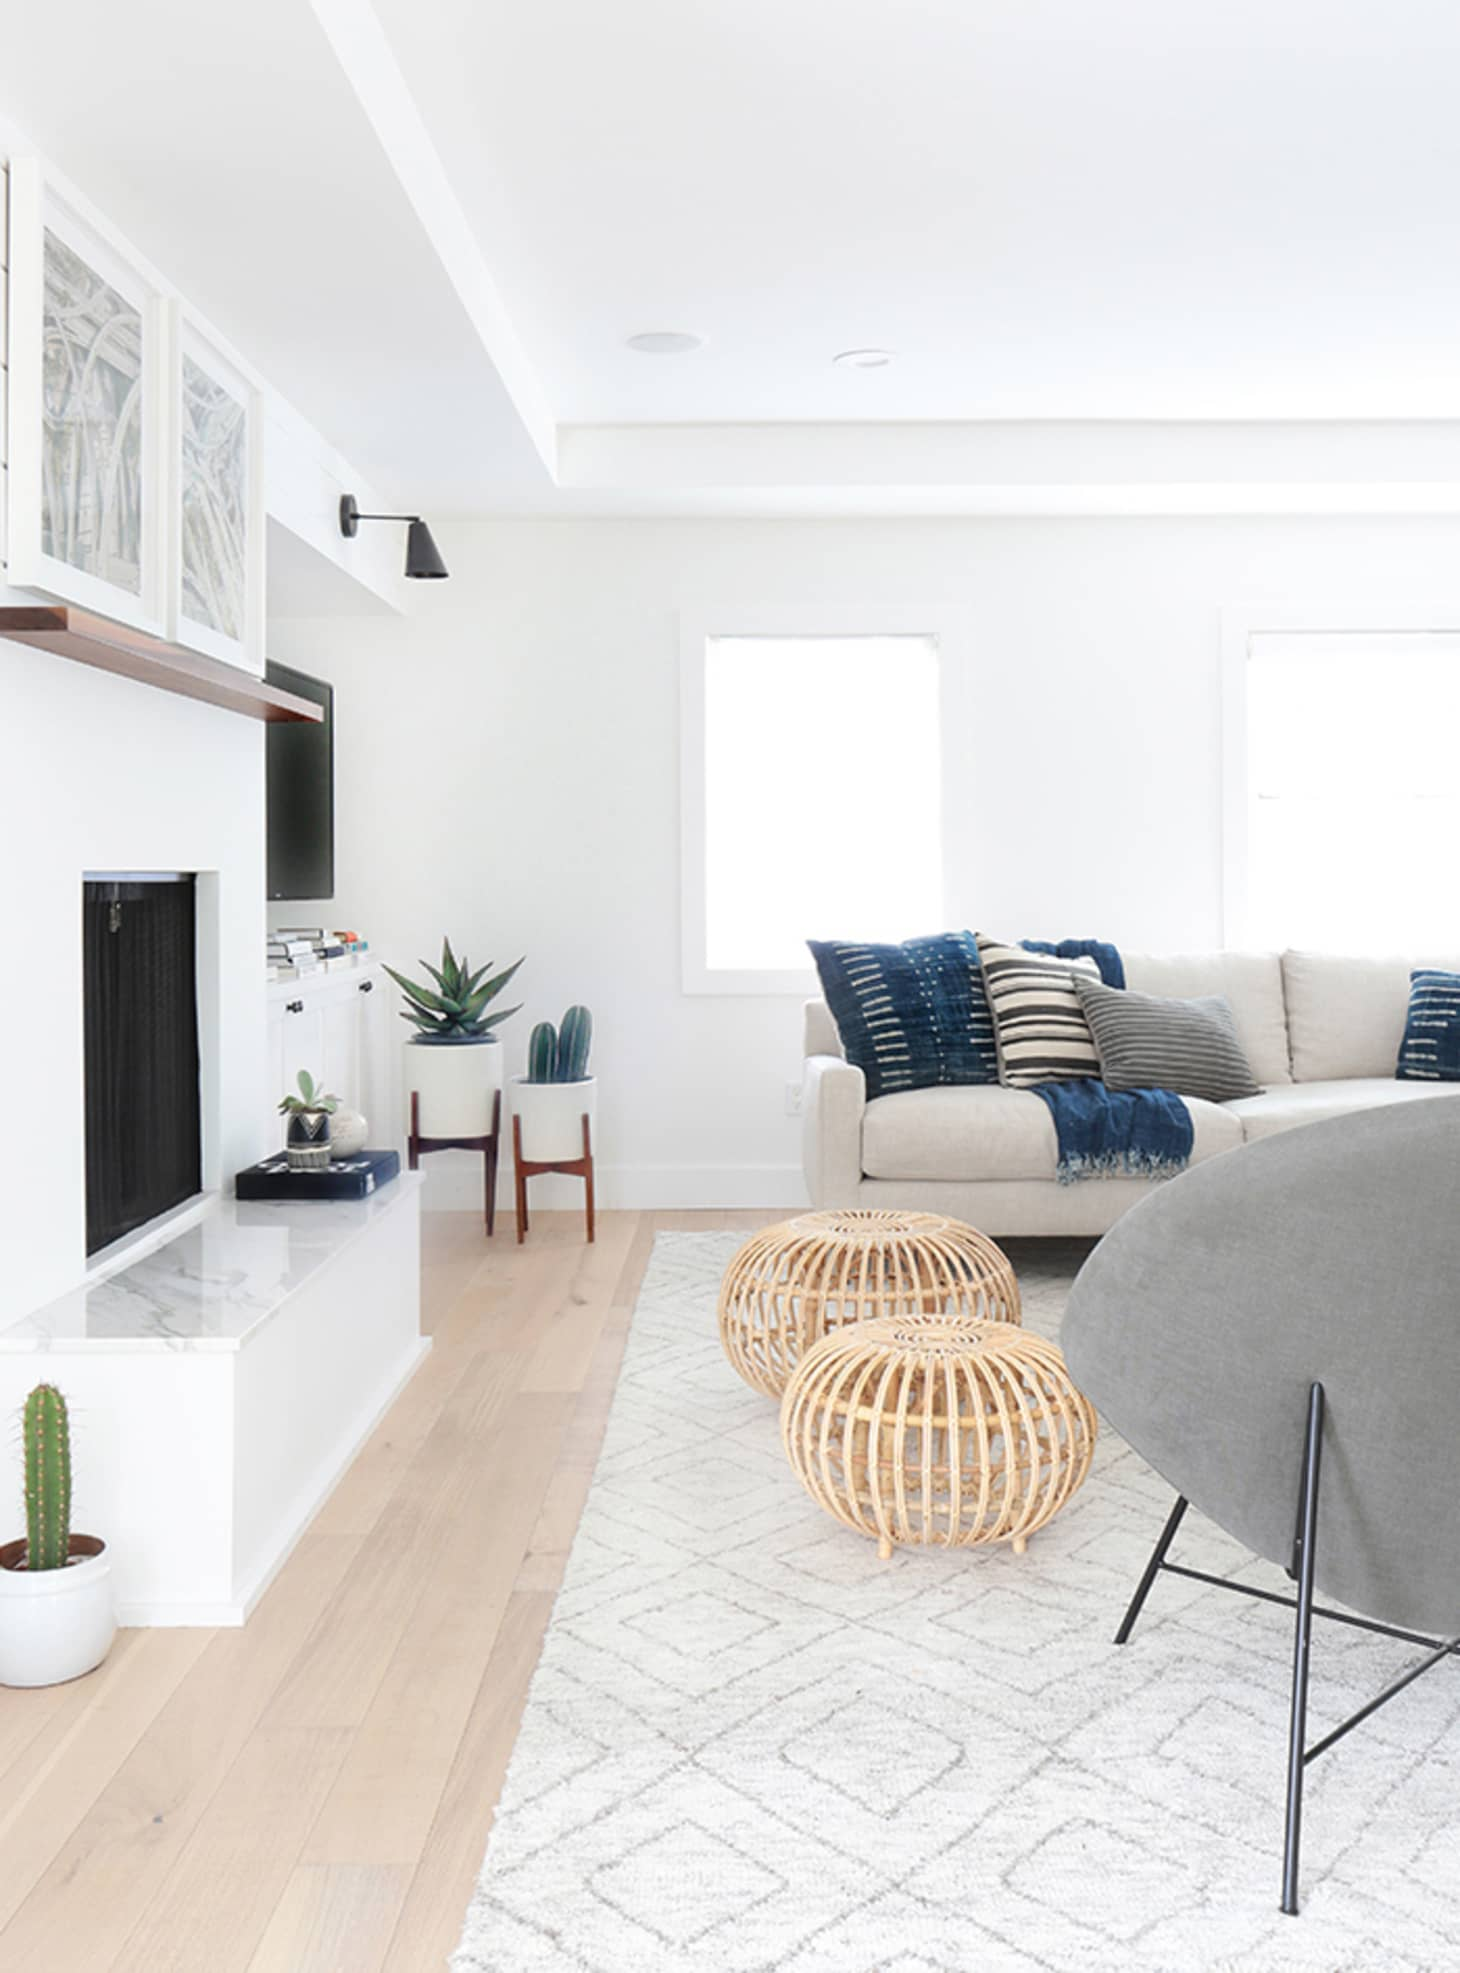 Are White Walls the Ultimate Decorating Secret Weapon? | Apartment ...